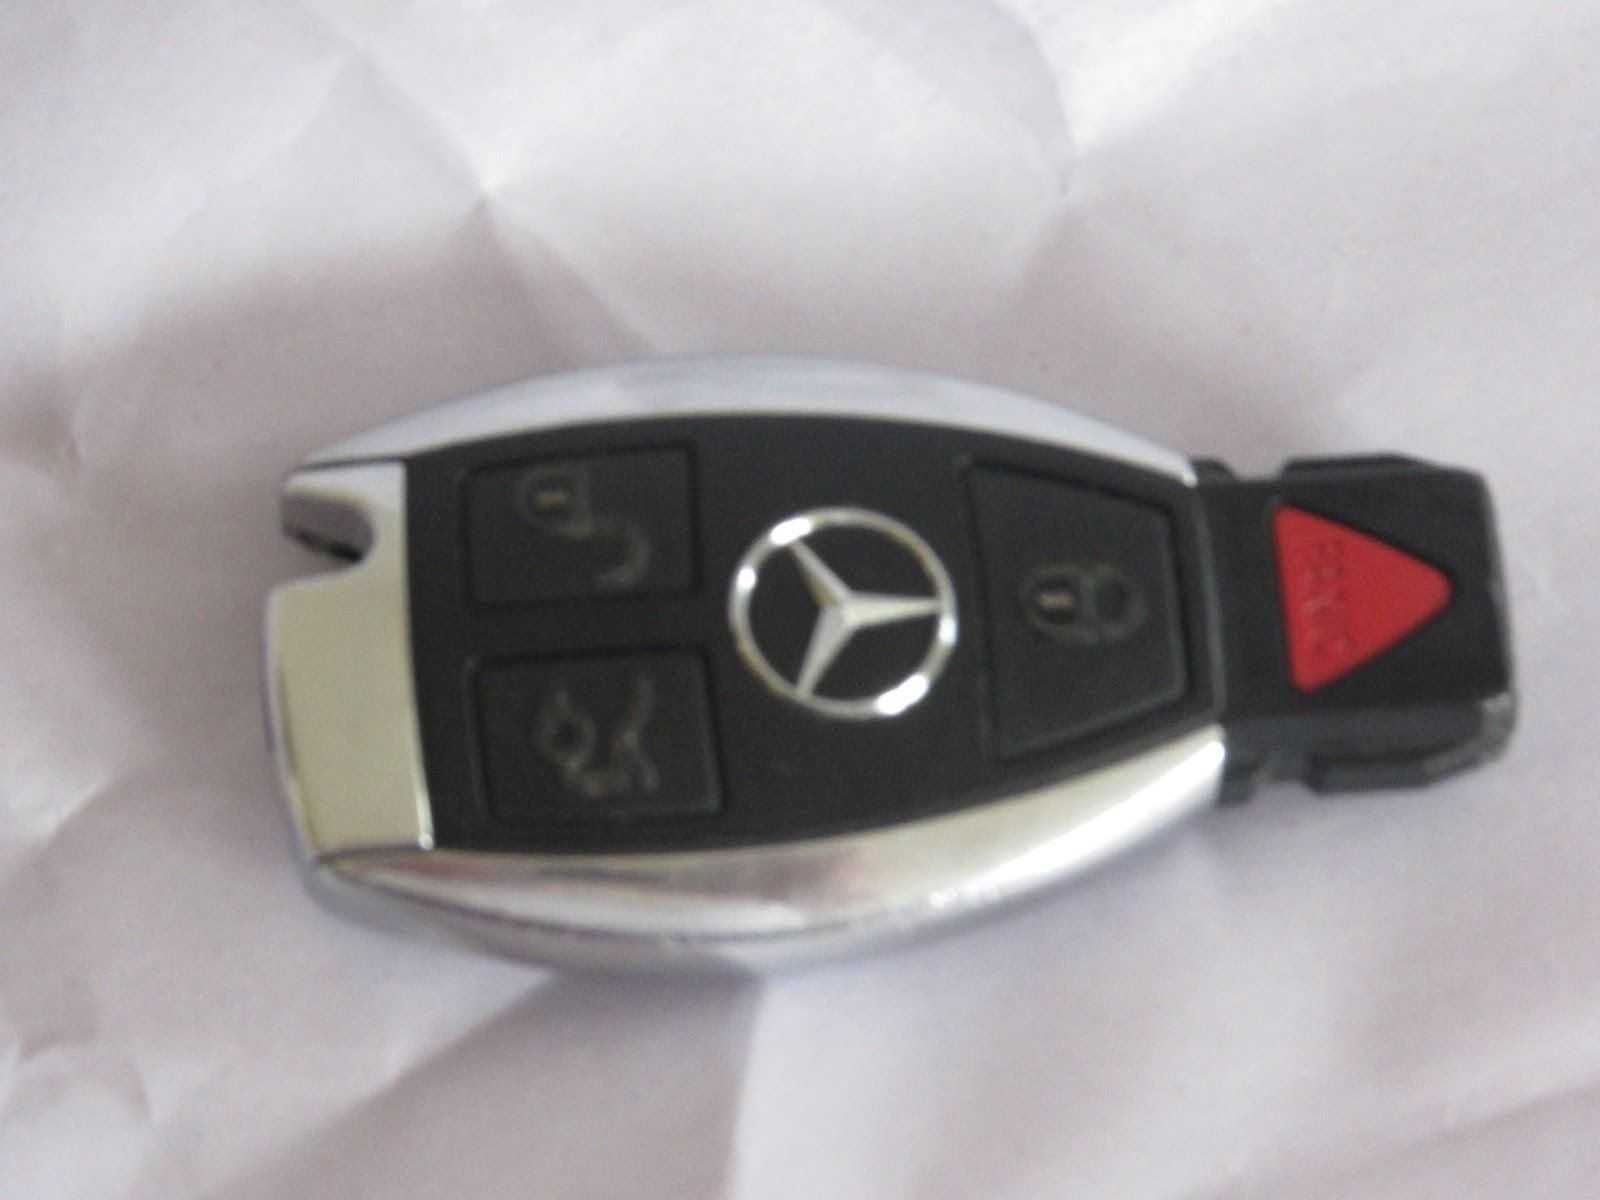 Cool How to change battery - Mercedes Benz Keyfob Battery